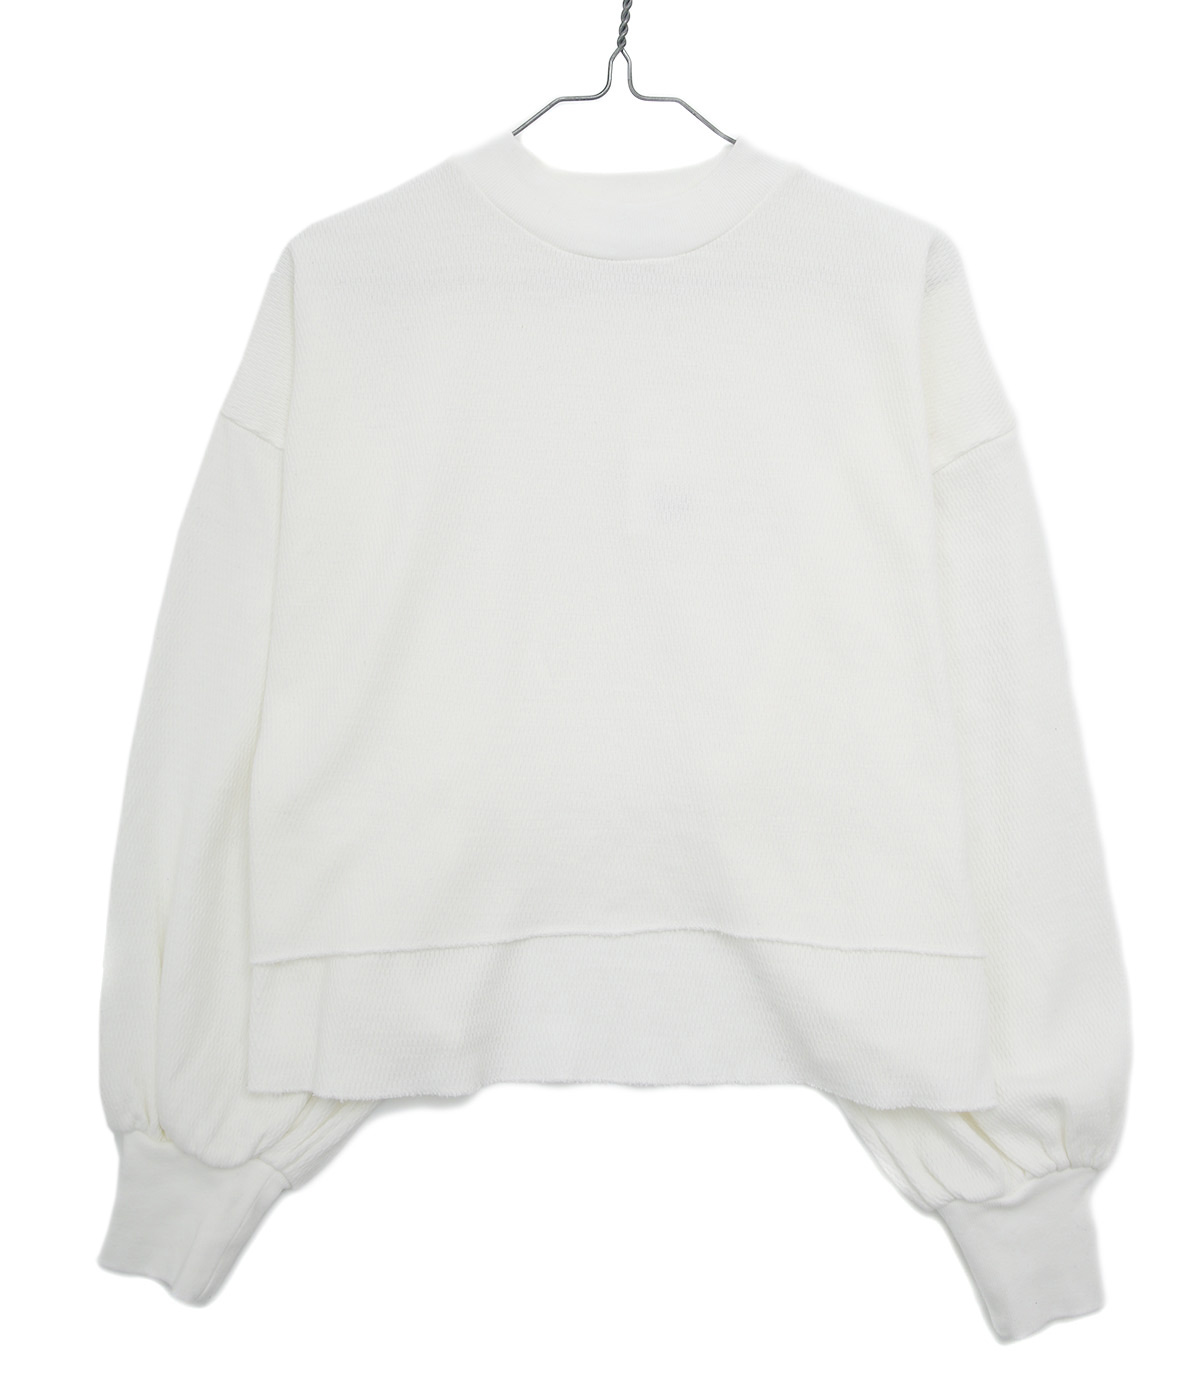 【レディース】THERMAL VOLUME SLEEVE TOPS